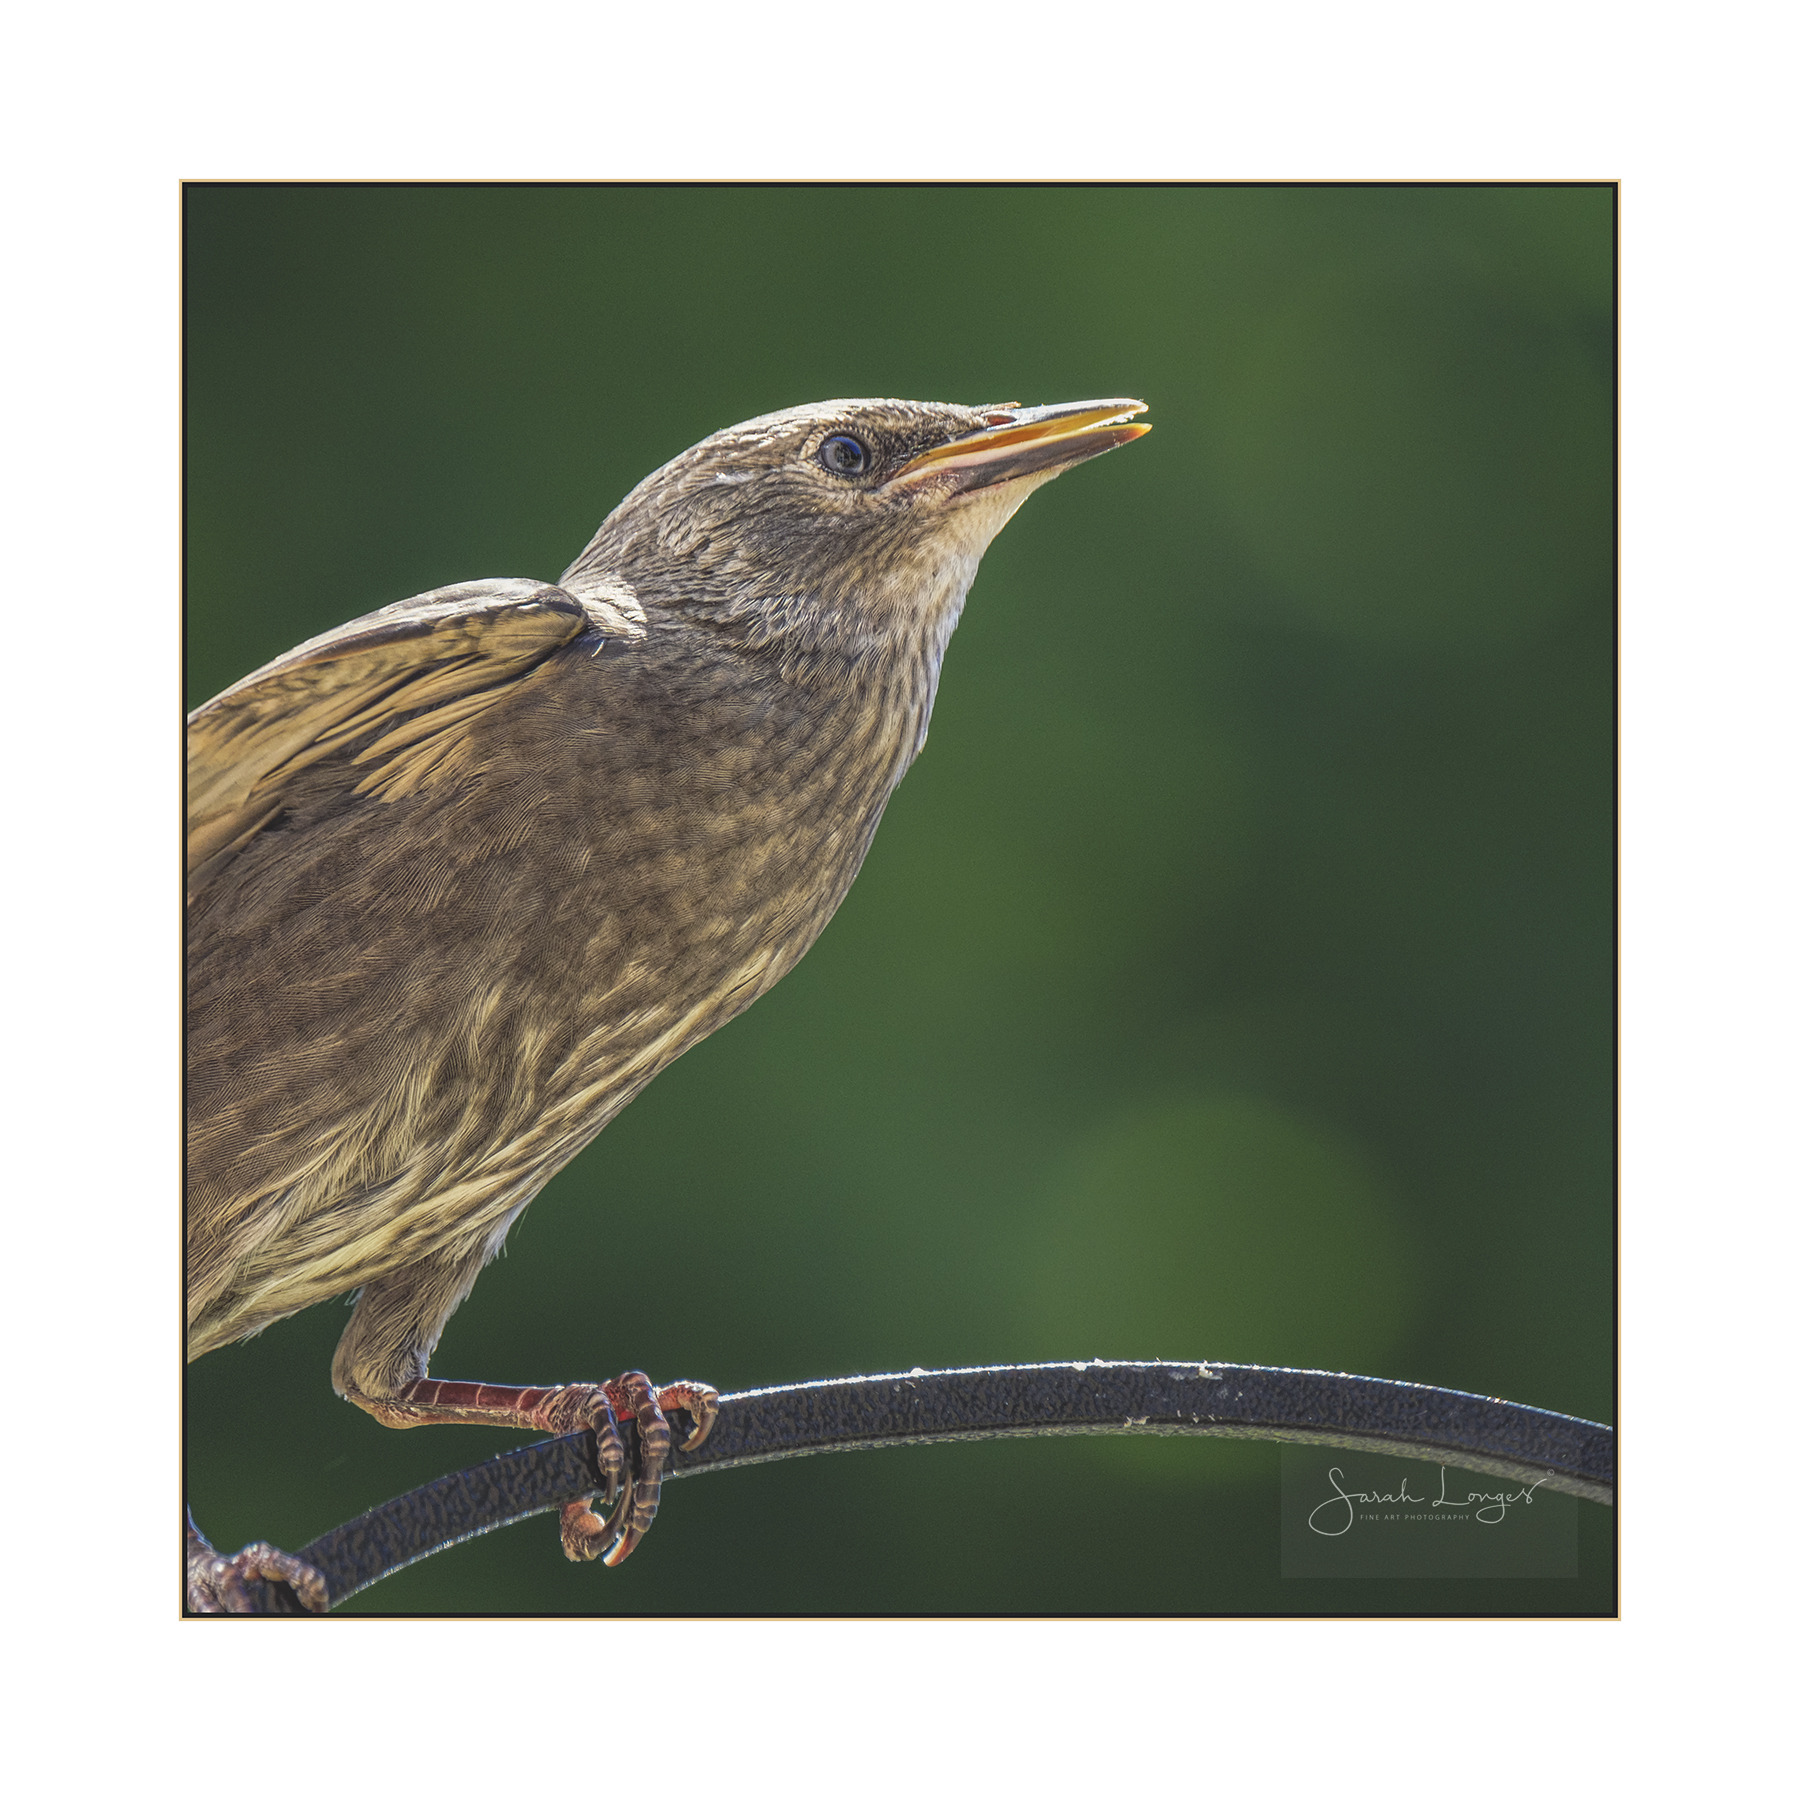 Fledgling Starling Detail